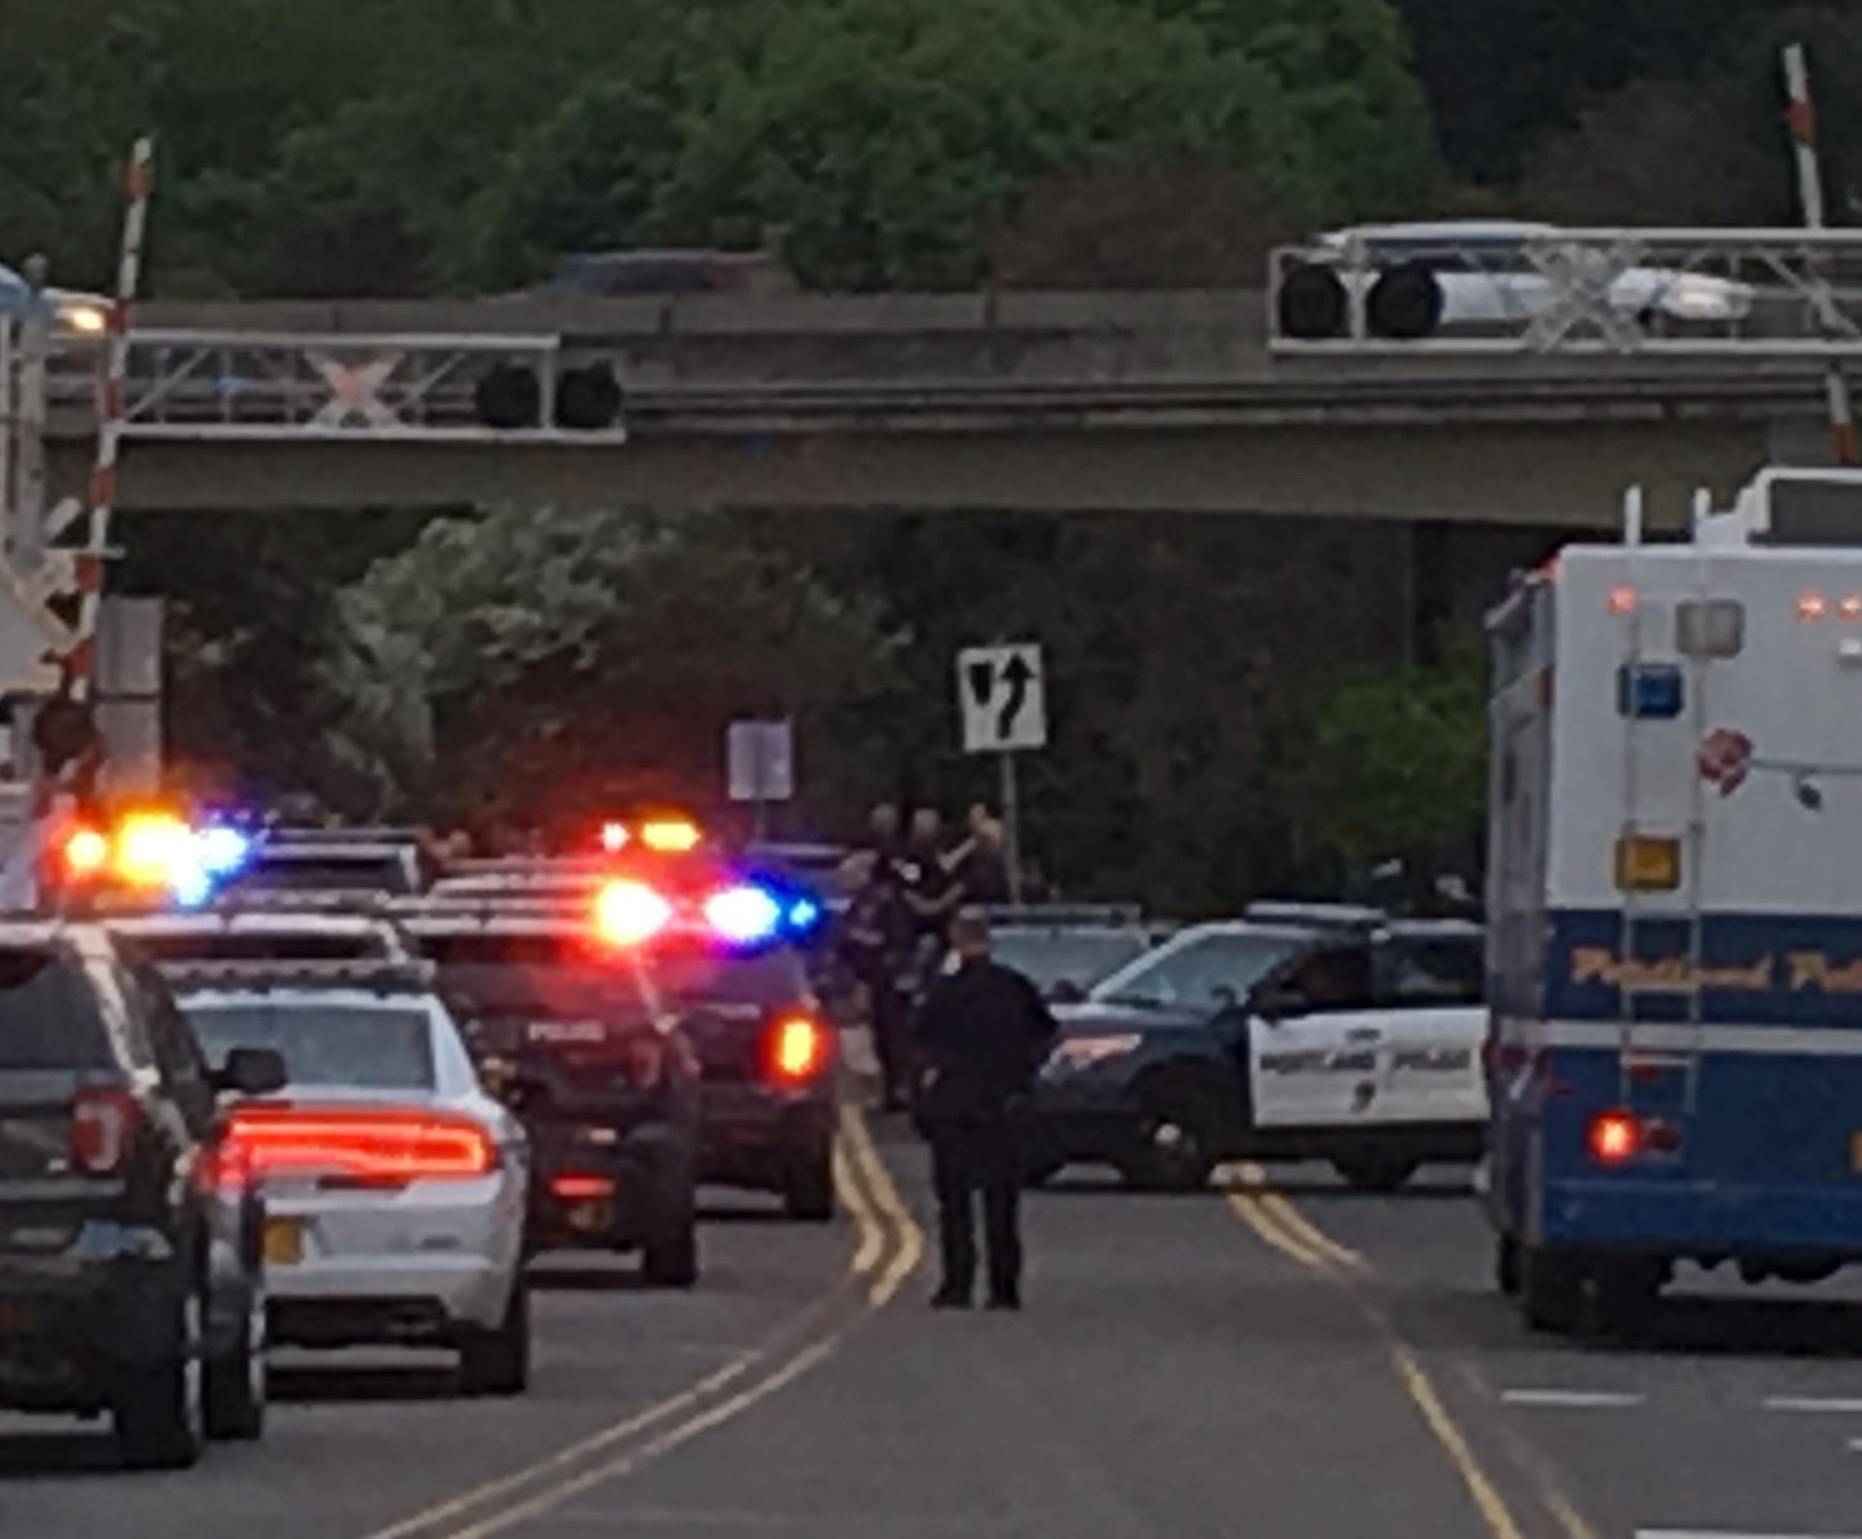 Police investigate an officer-involved shooting that left one person dead near the Interstate 205 overpass on Southeast Flavel Street on Wednesday night, May 10, 2017. (Photo: Monty Orrick/KATU News)